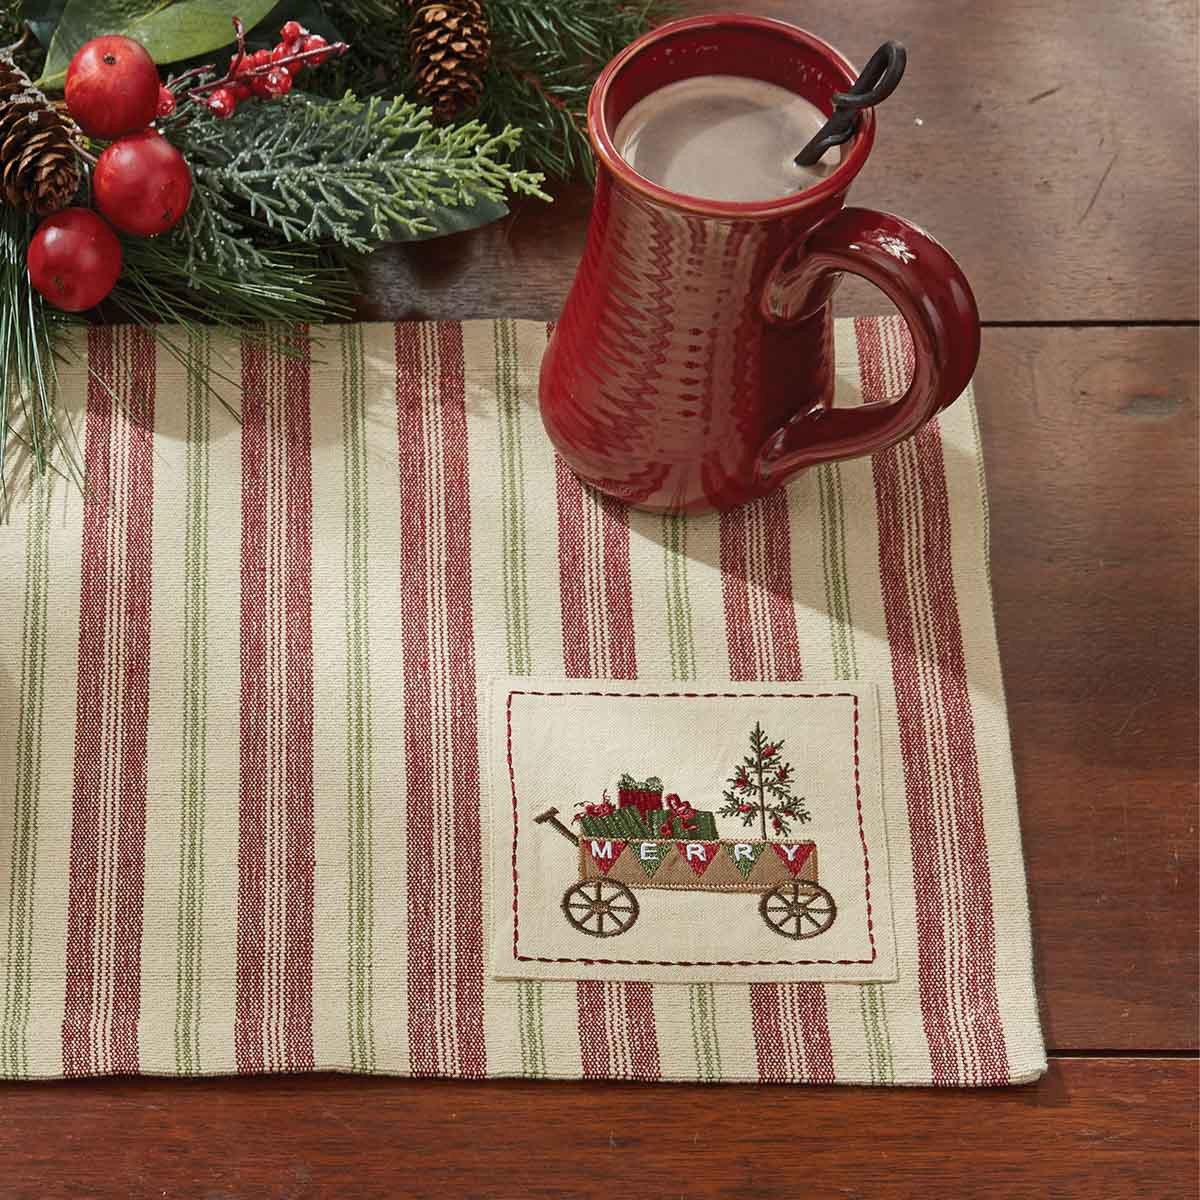 Merry Woven Striped Placemat  with Embroidered Patch